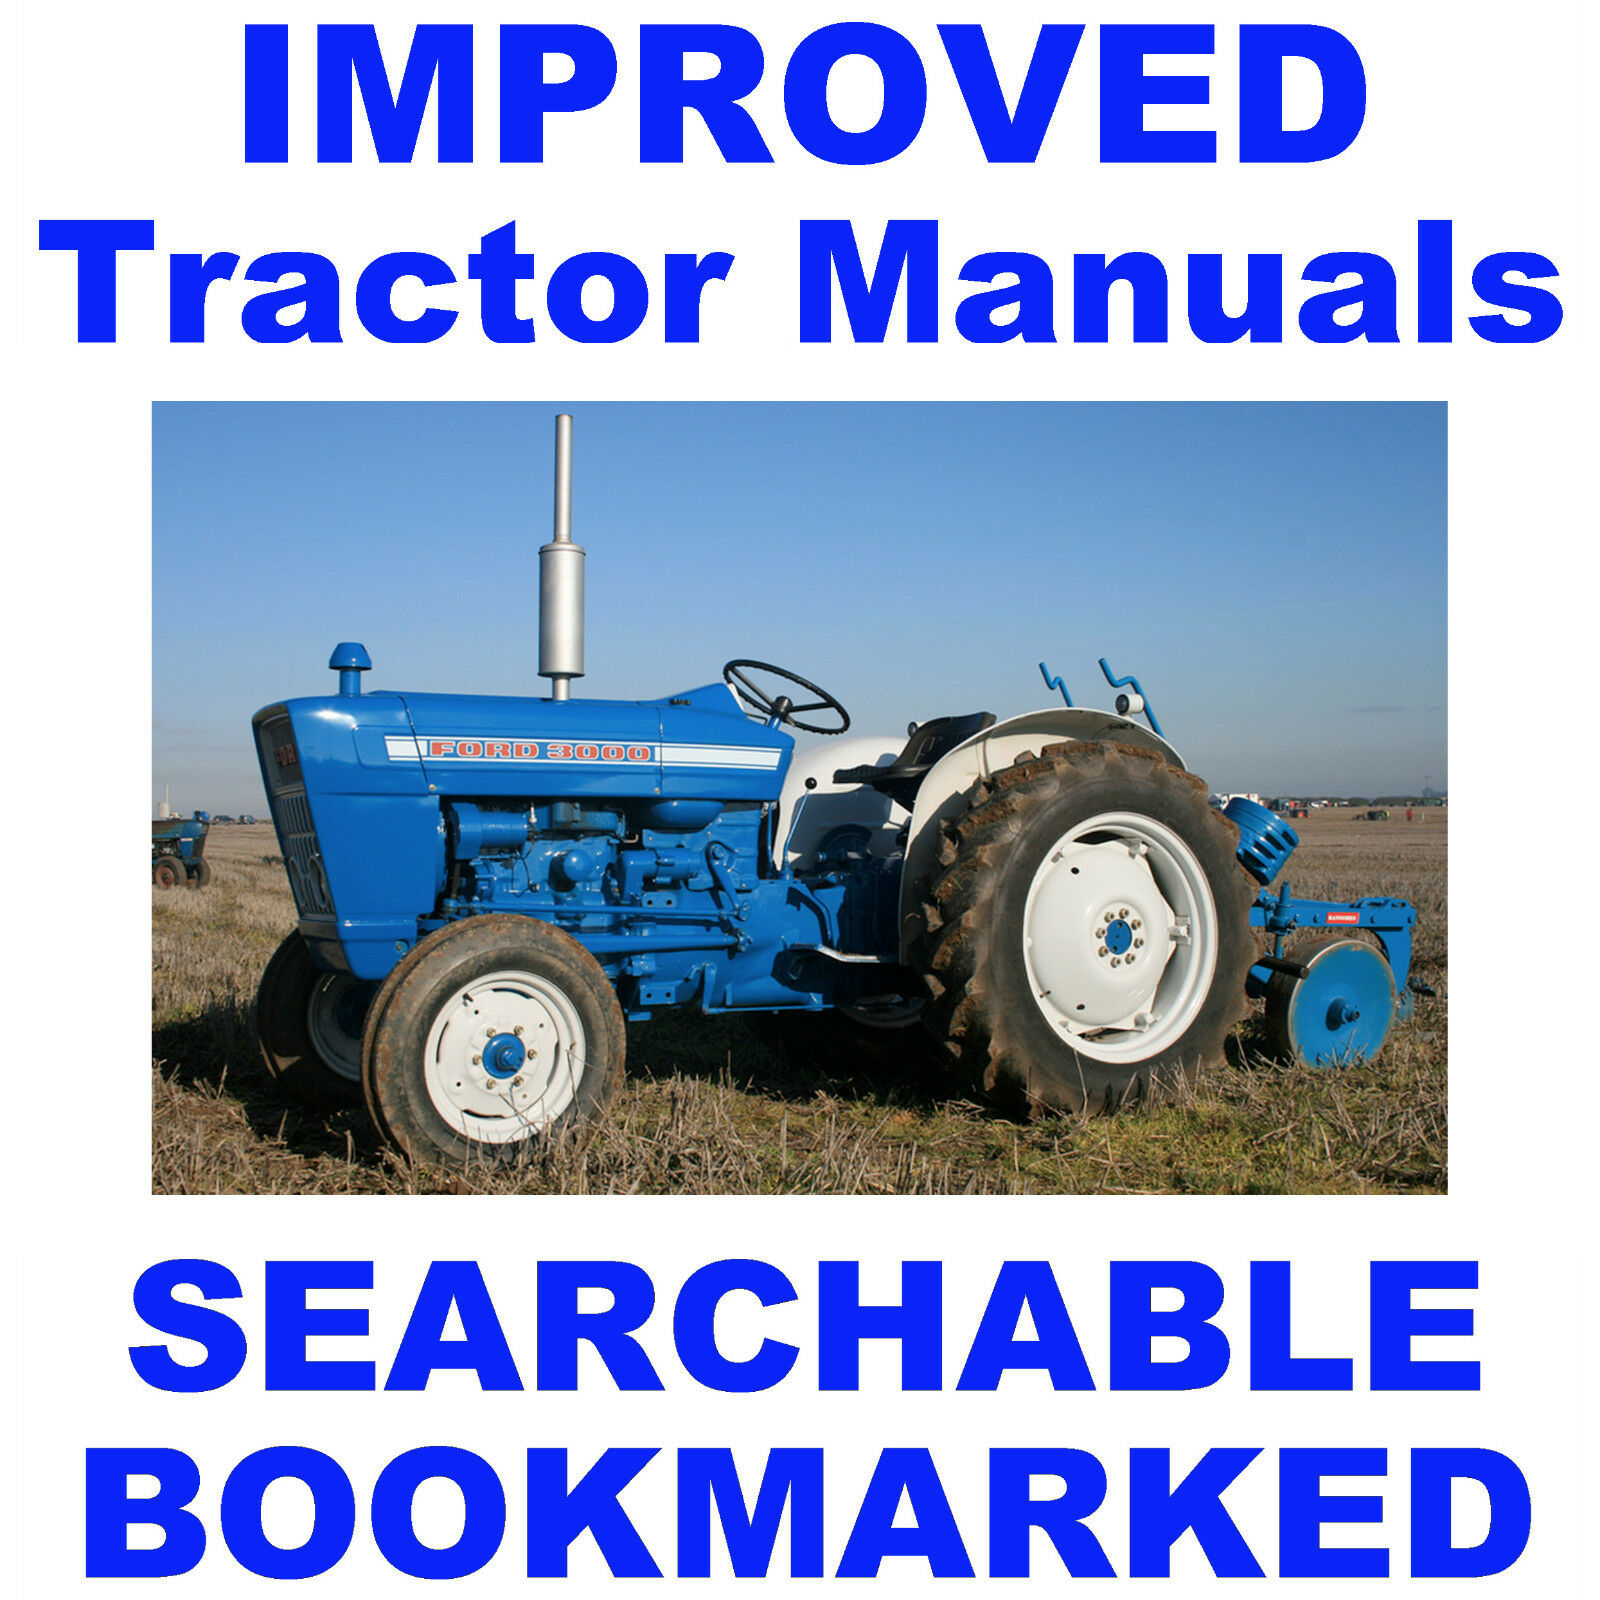 Ford 2000 3 Cyl Tractor Diagrams Trusted Wiring 8000 Diagram 3000 Cylinder Service Parts Owners Manual 9 Manuals 600